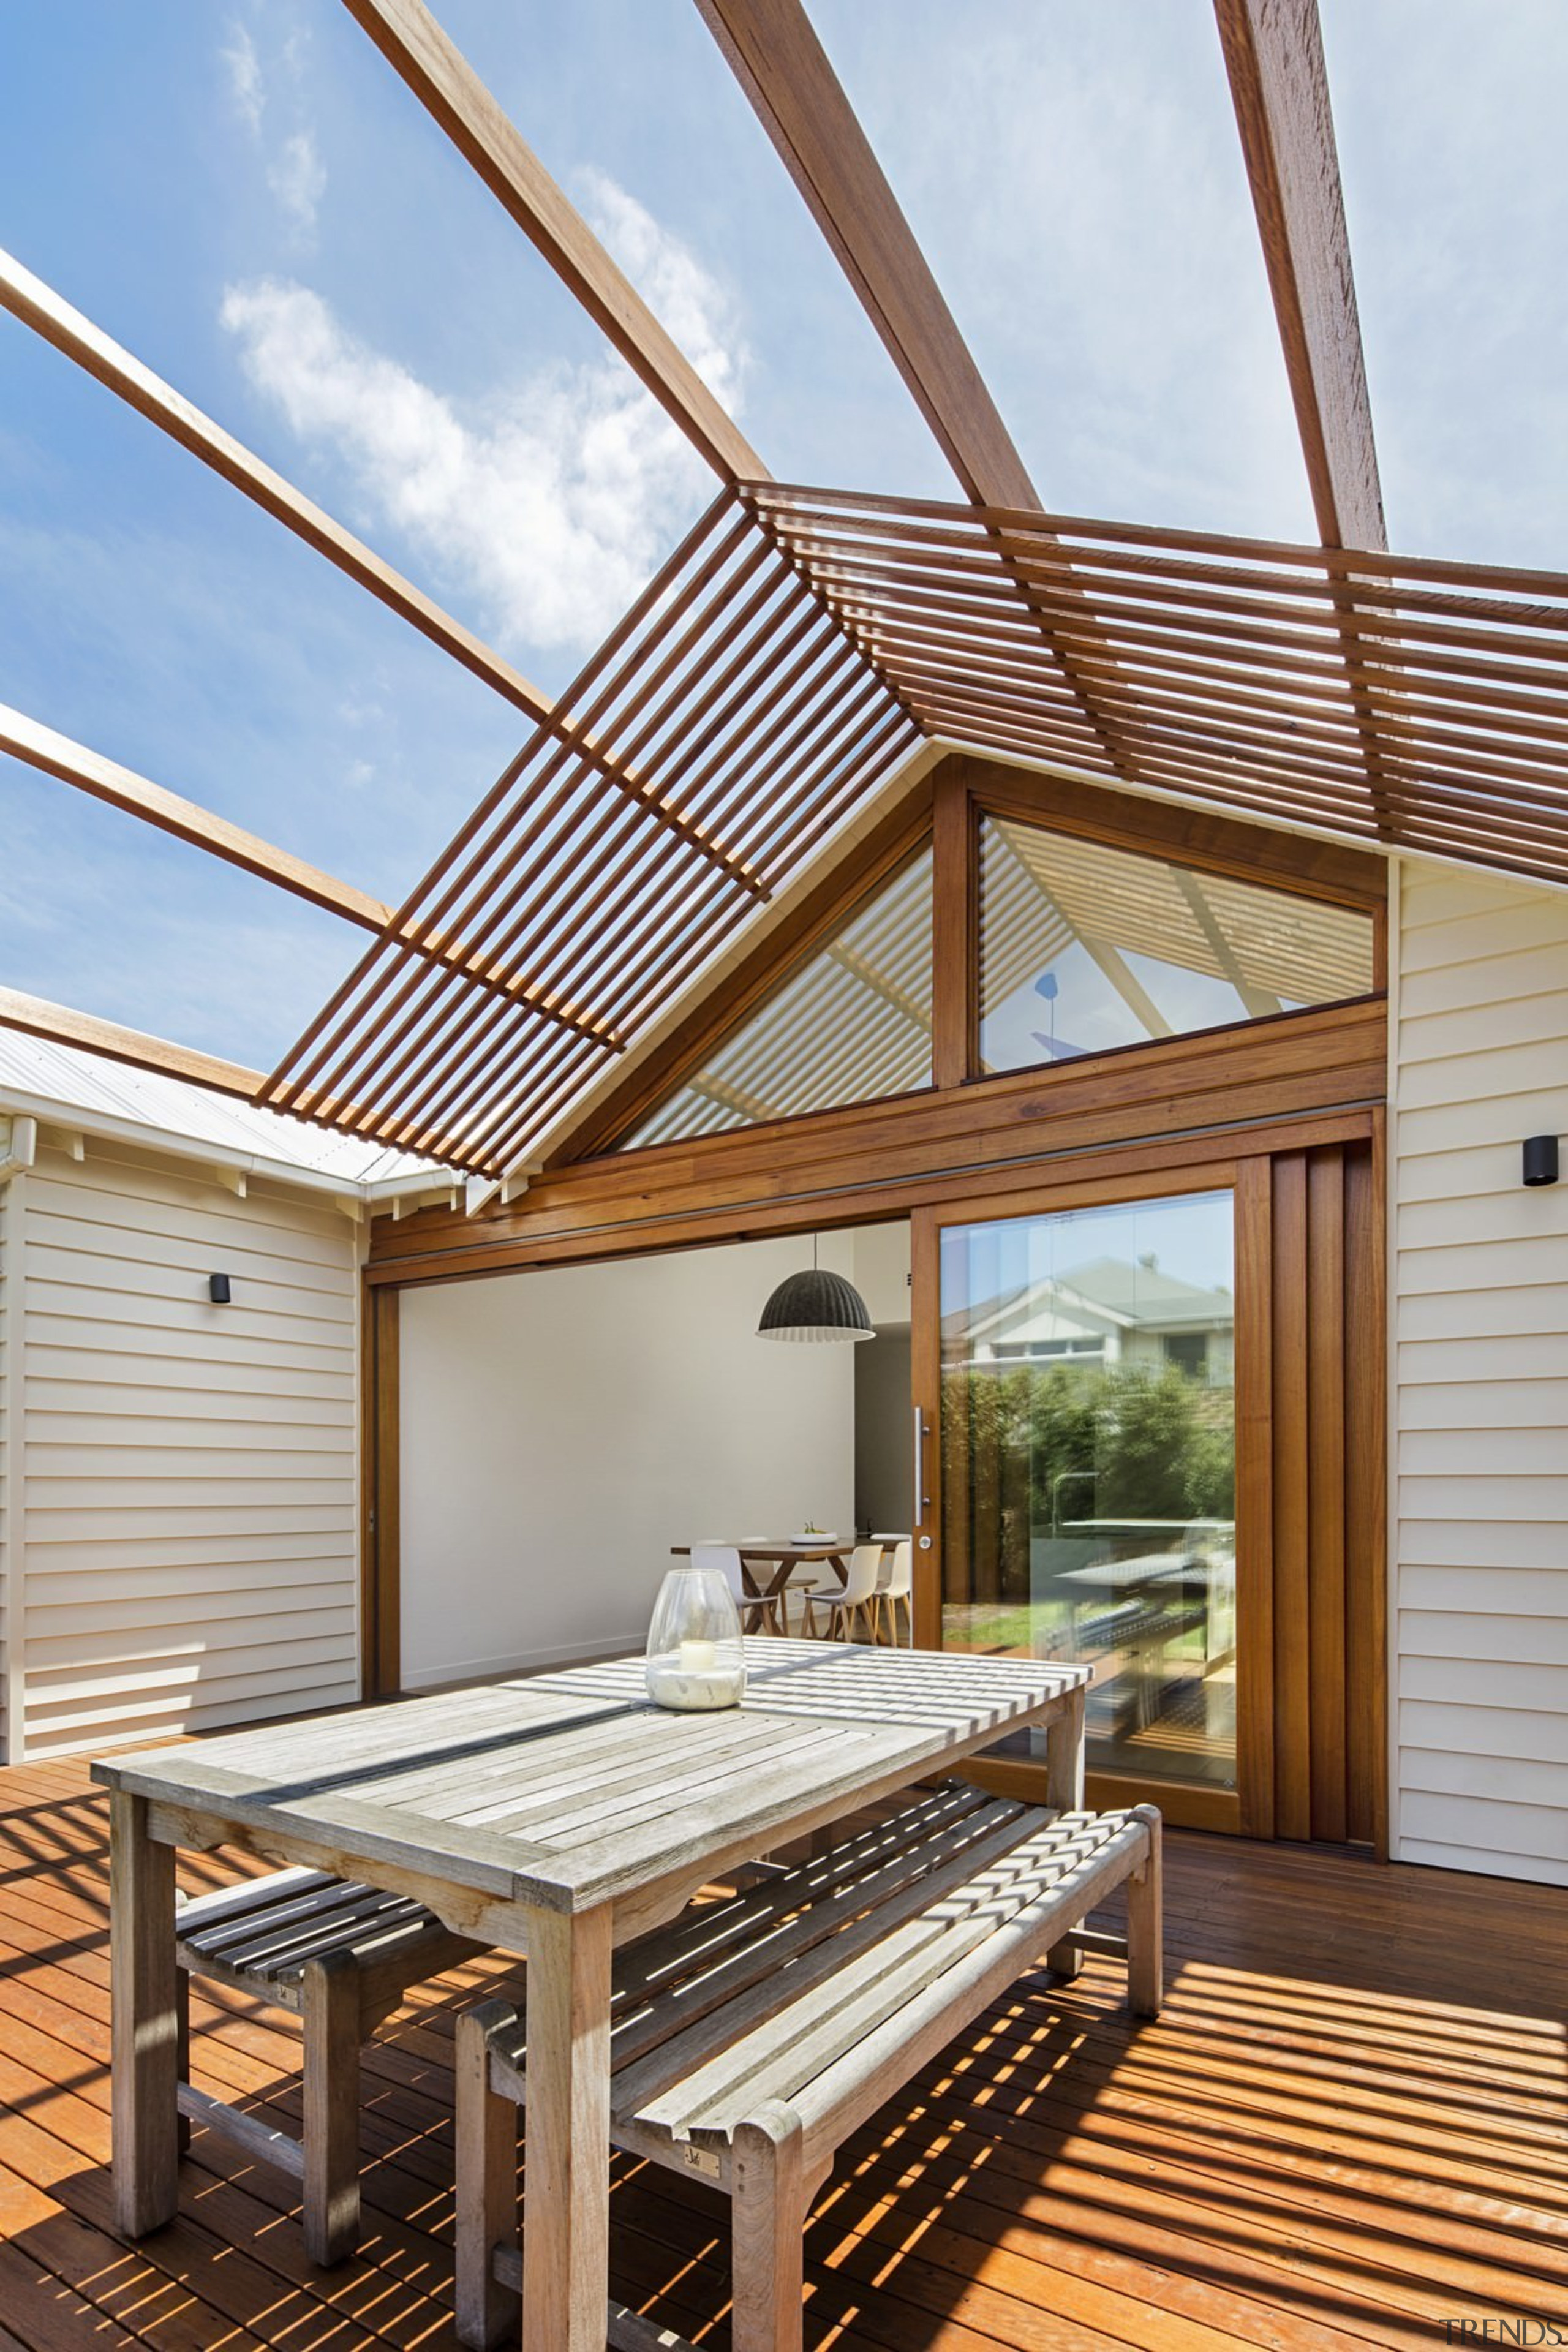 The kitchen and outdoor dining area are connected daylighting, outdoor structure, real estate, roof, wood, brown, white